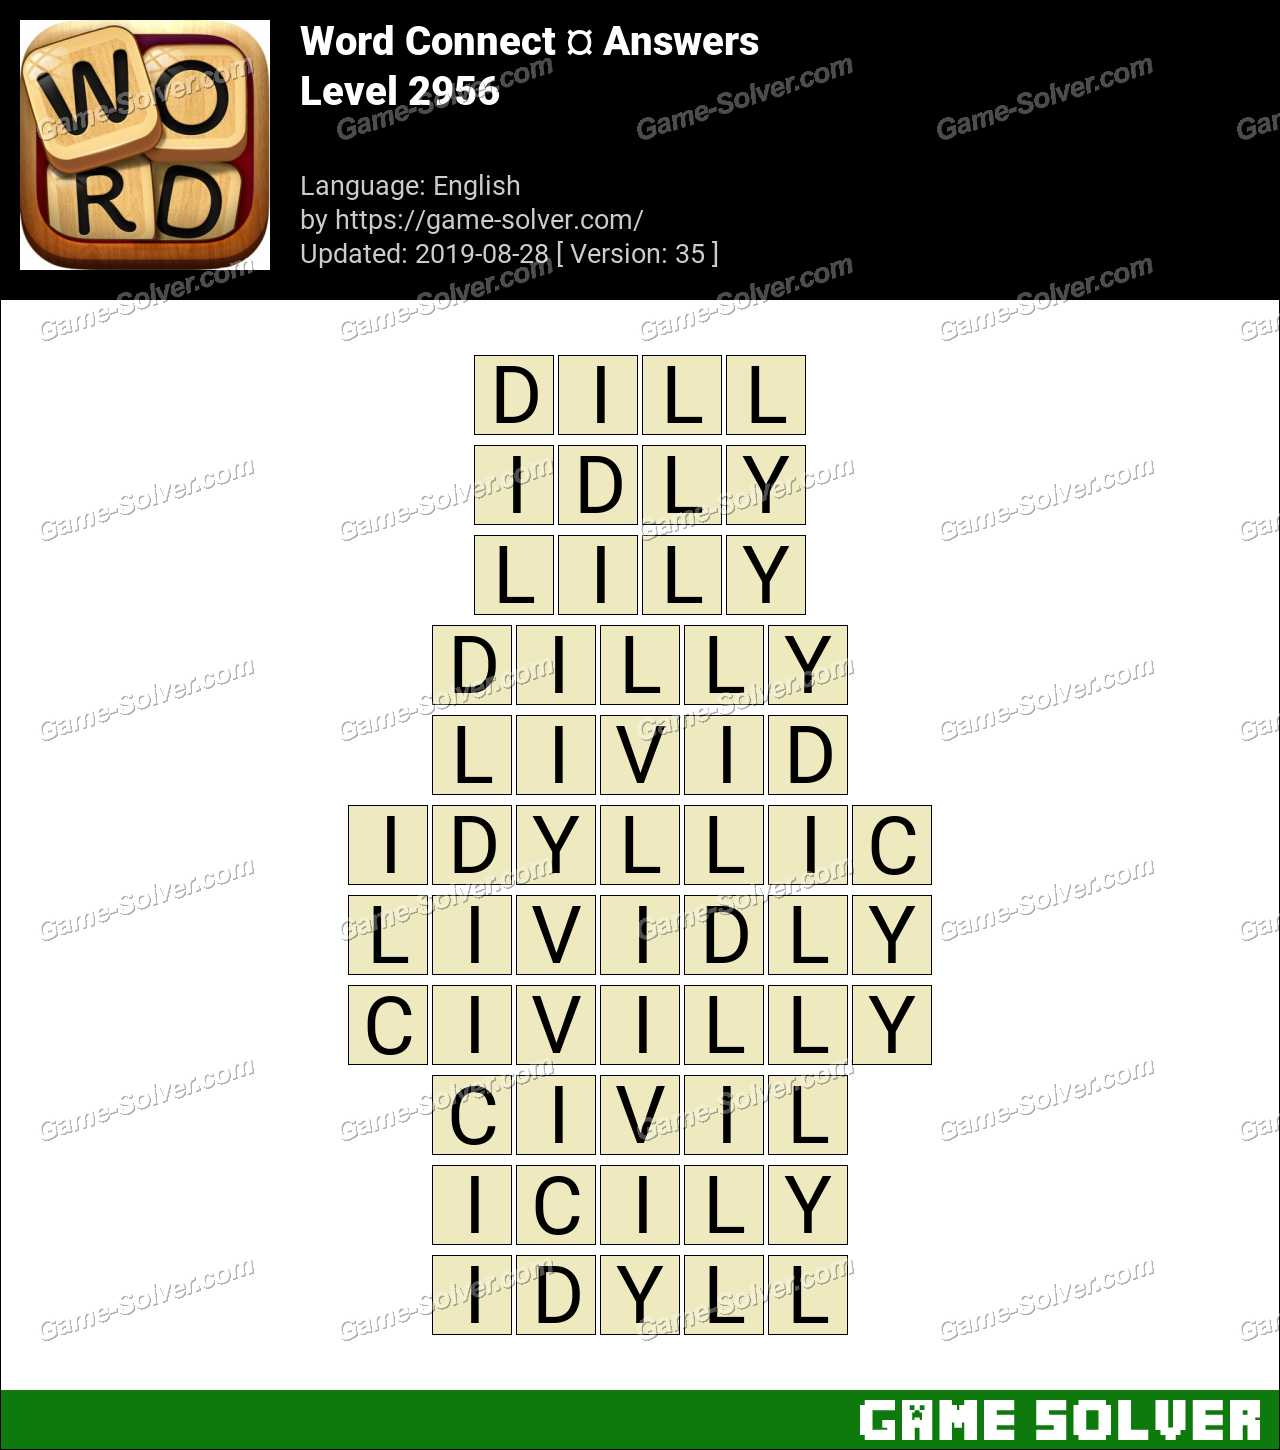 Word Connect Level 2956 Answers